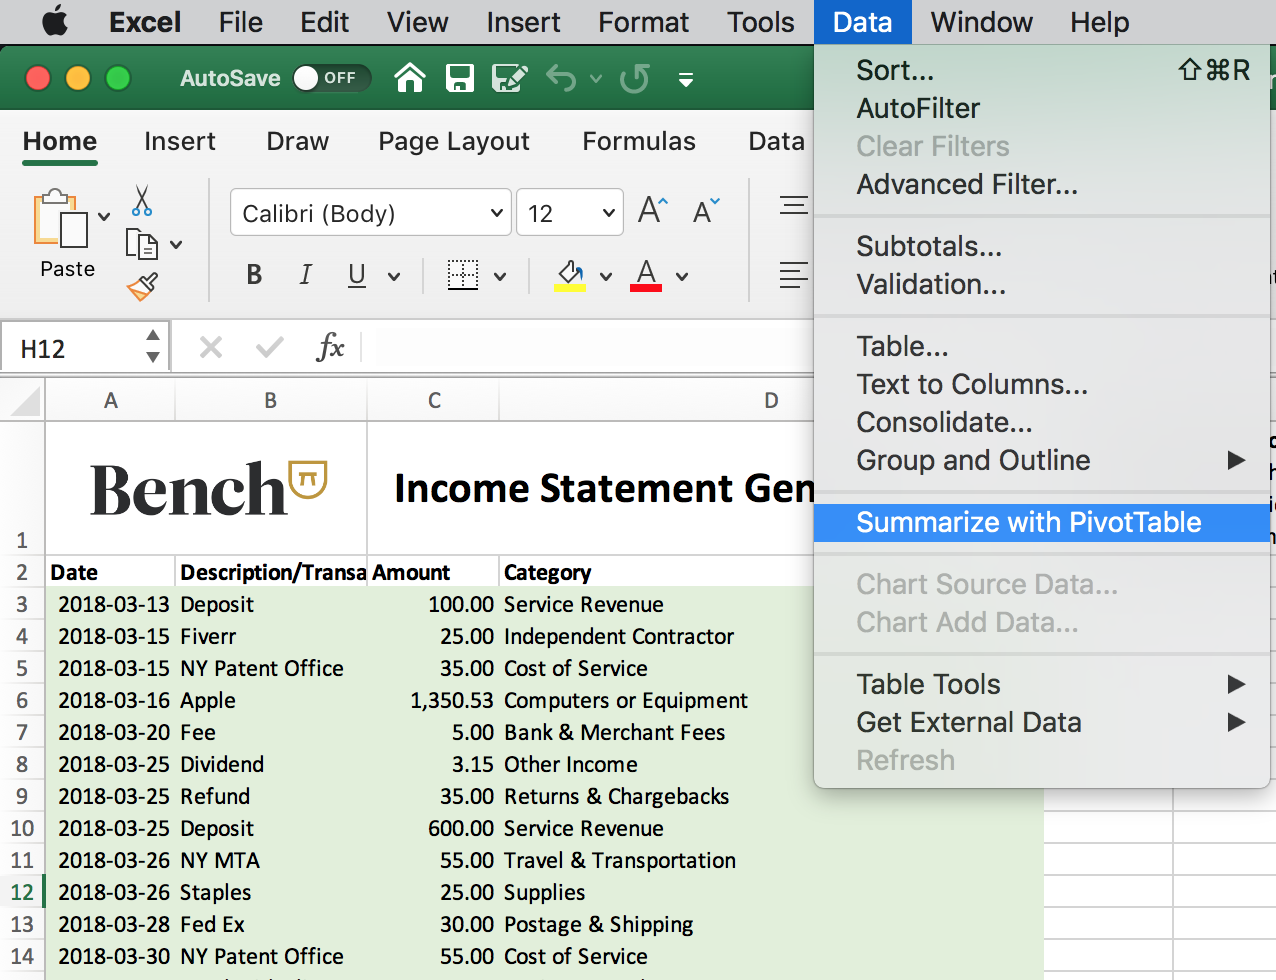 Accessing Pivot Tables in Excel